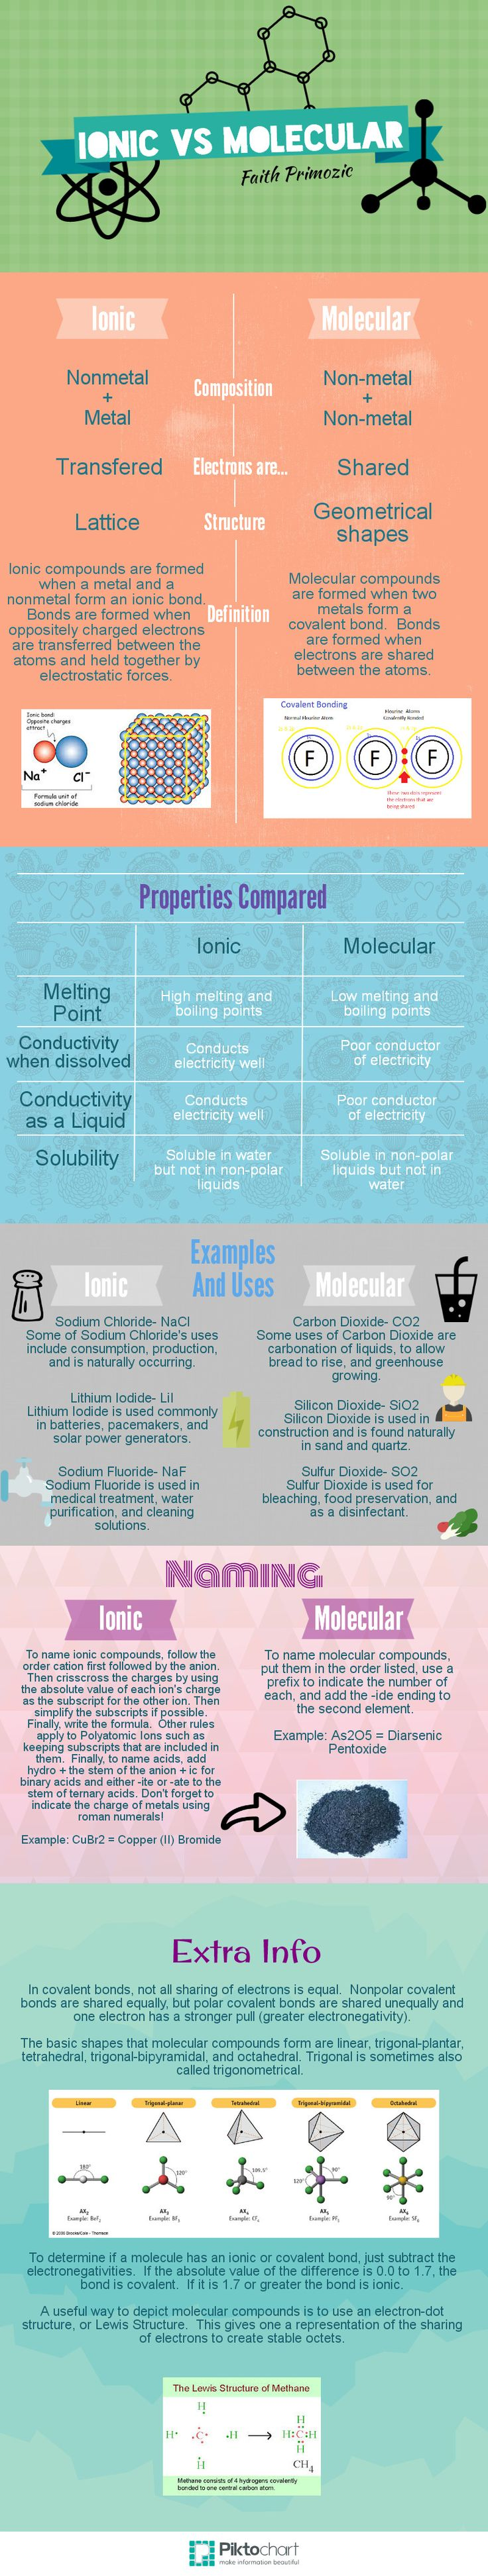 Ionic and Molecular Compounds Infographic